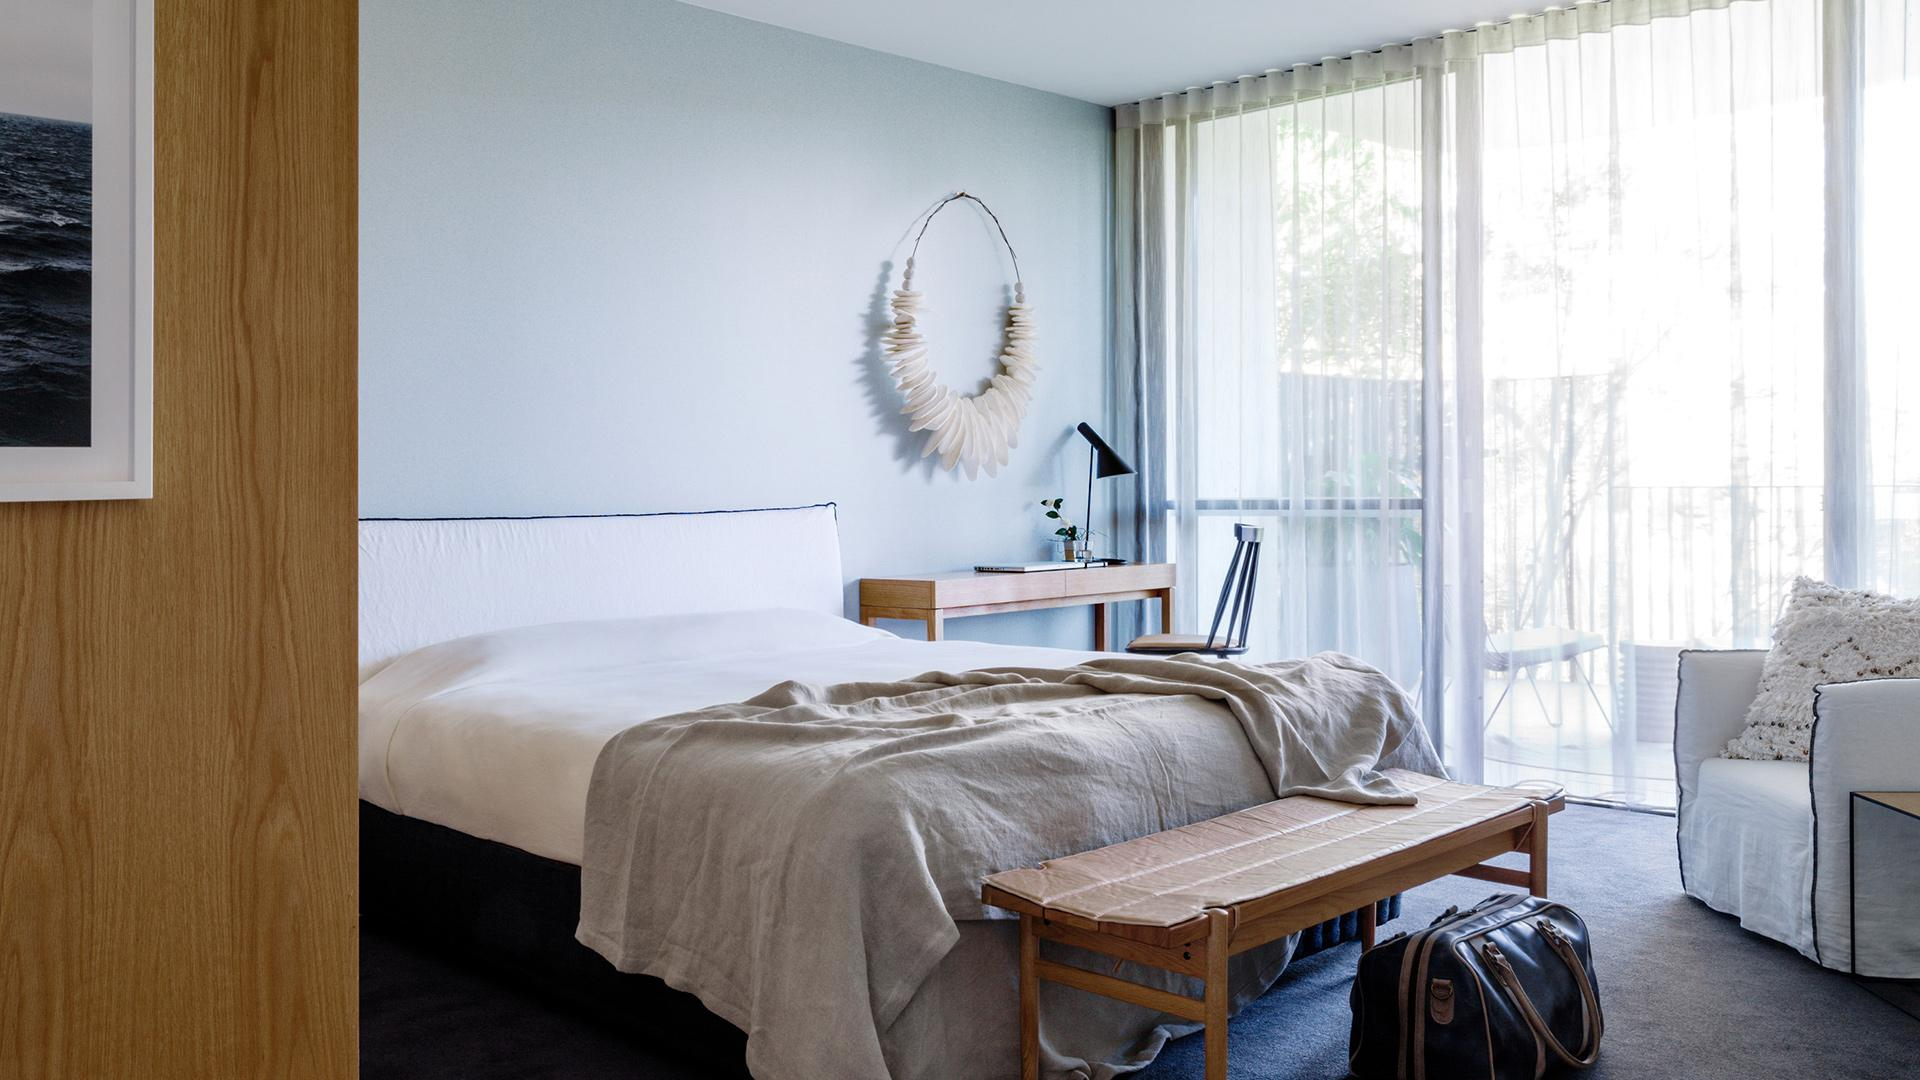 Classic Room image 1 at Bannisters Pavilion by City of Shoalhaven, New South Wales, Australia